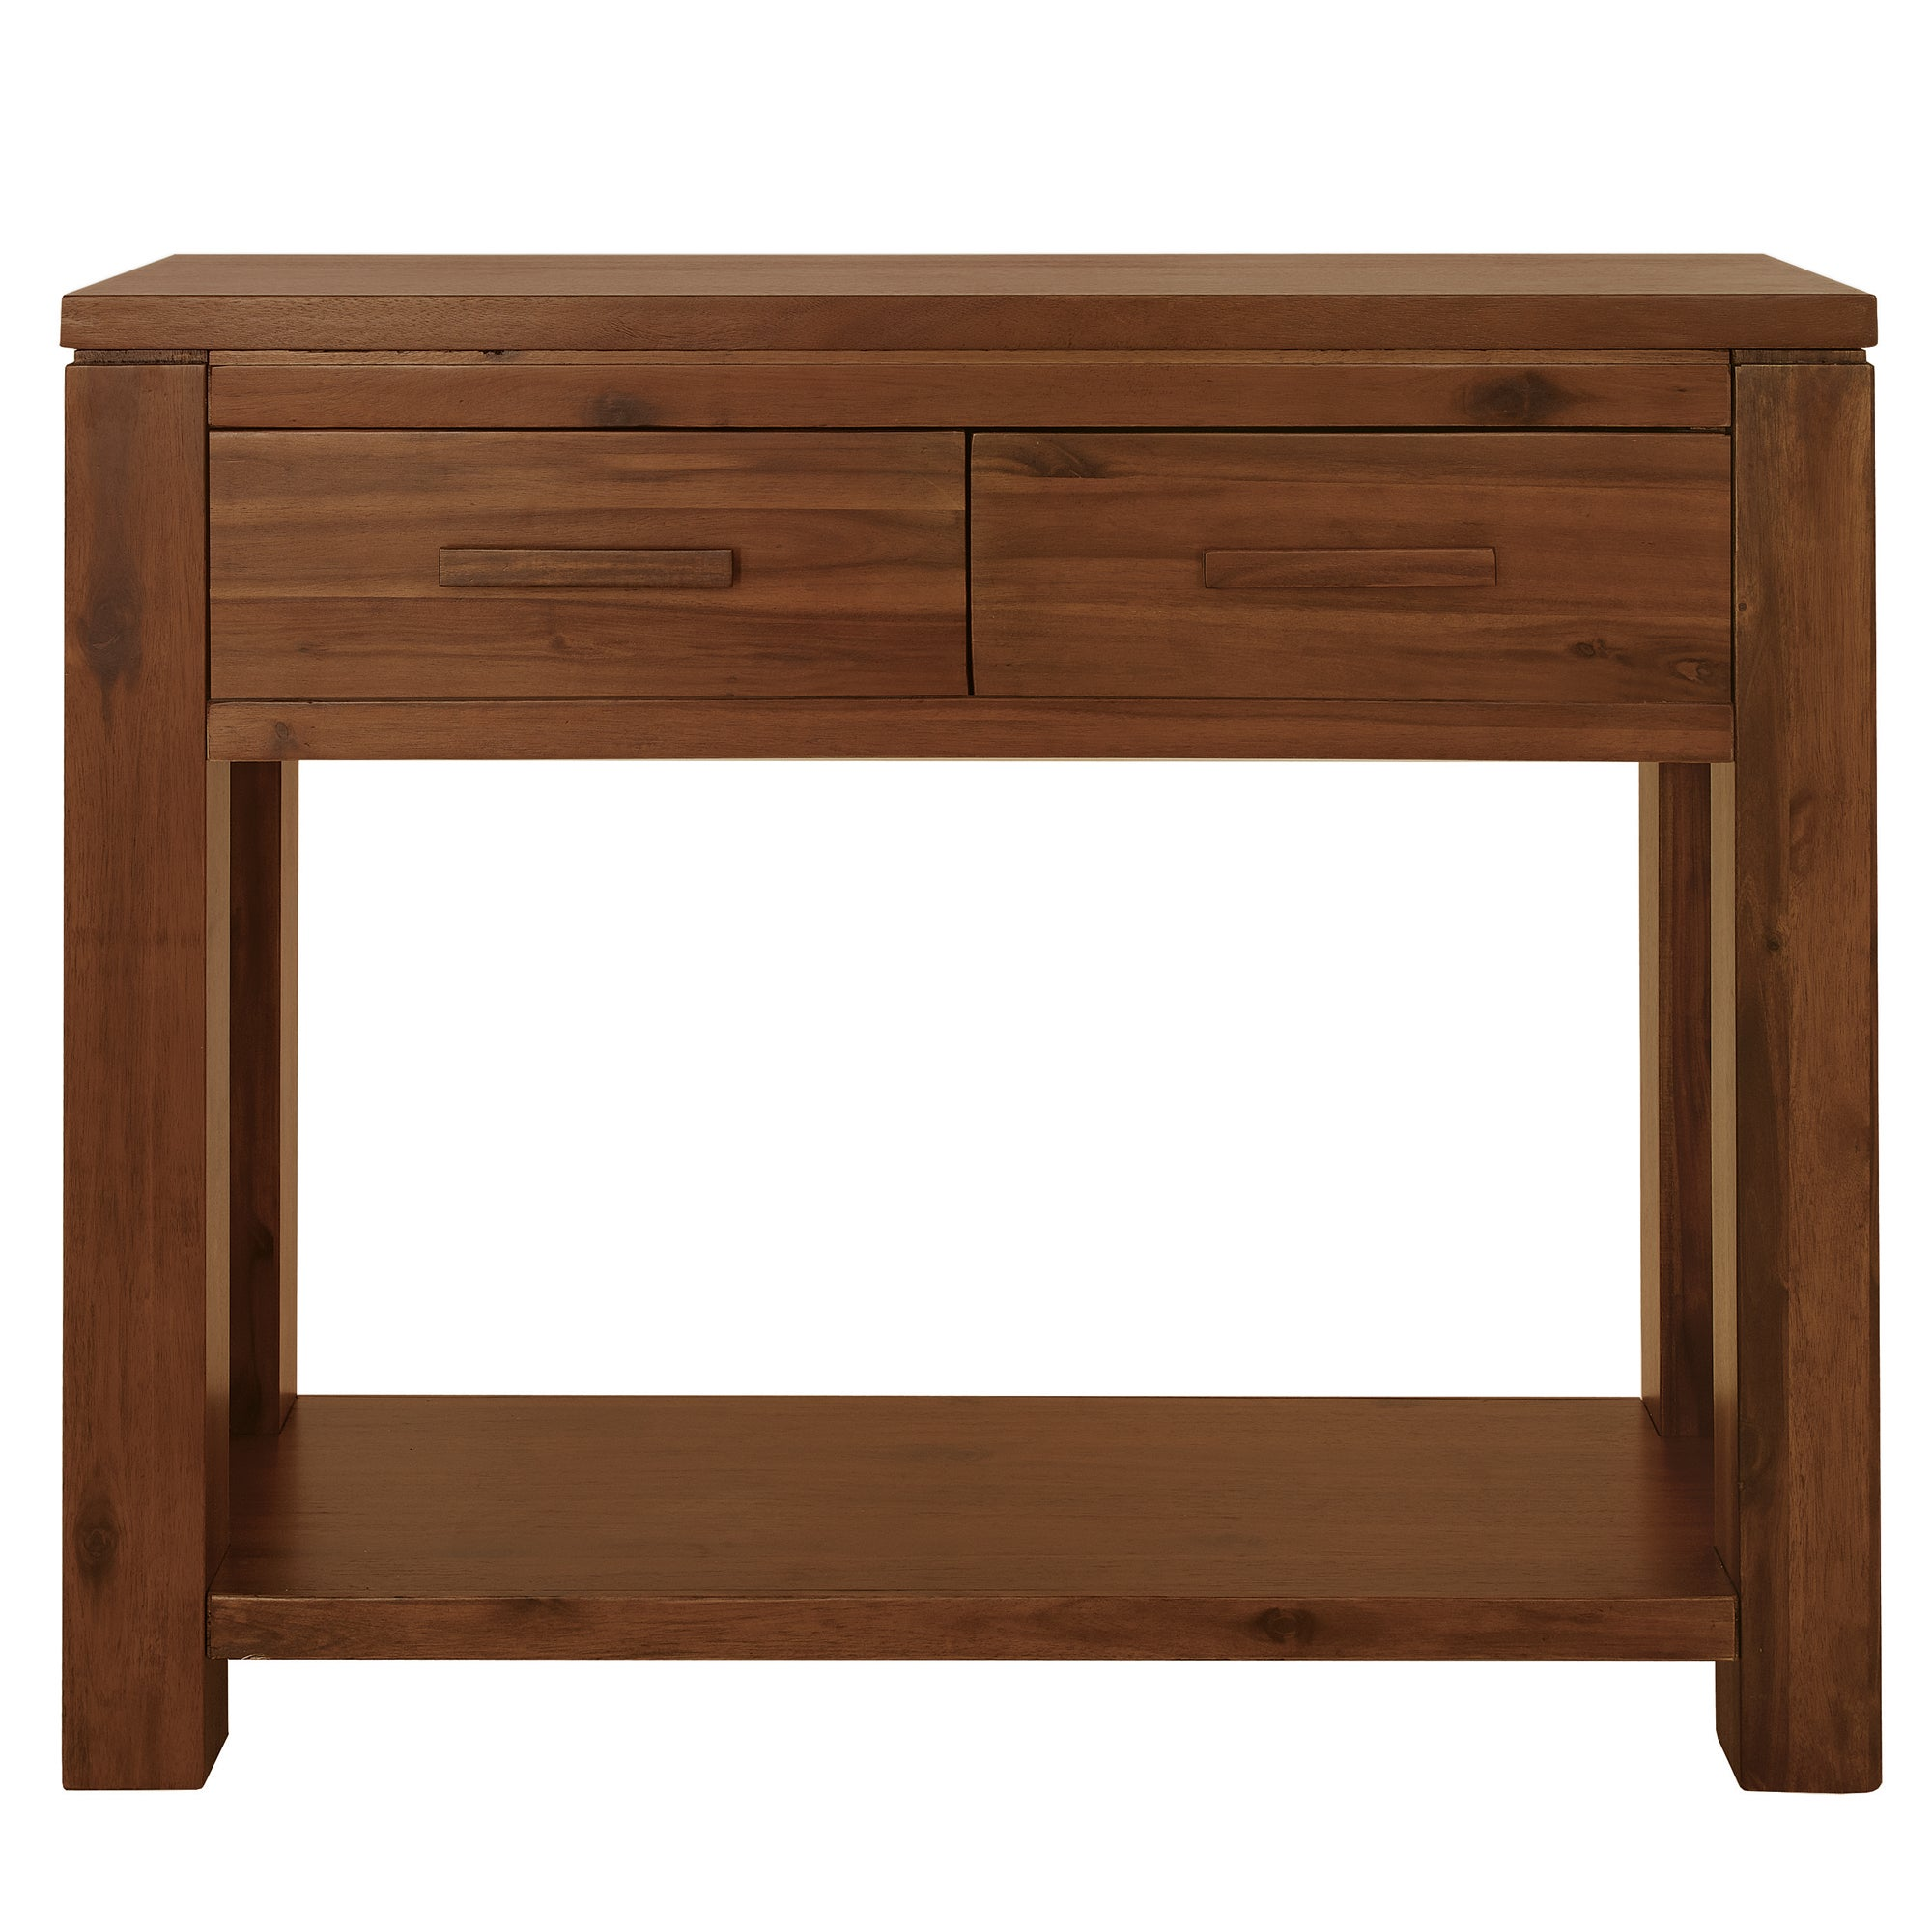 Seville Acacia Dark Wood Console Table